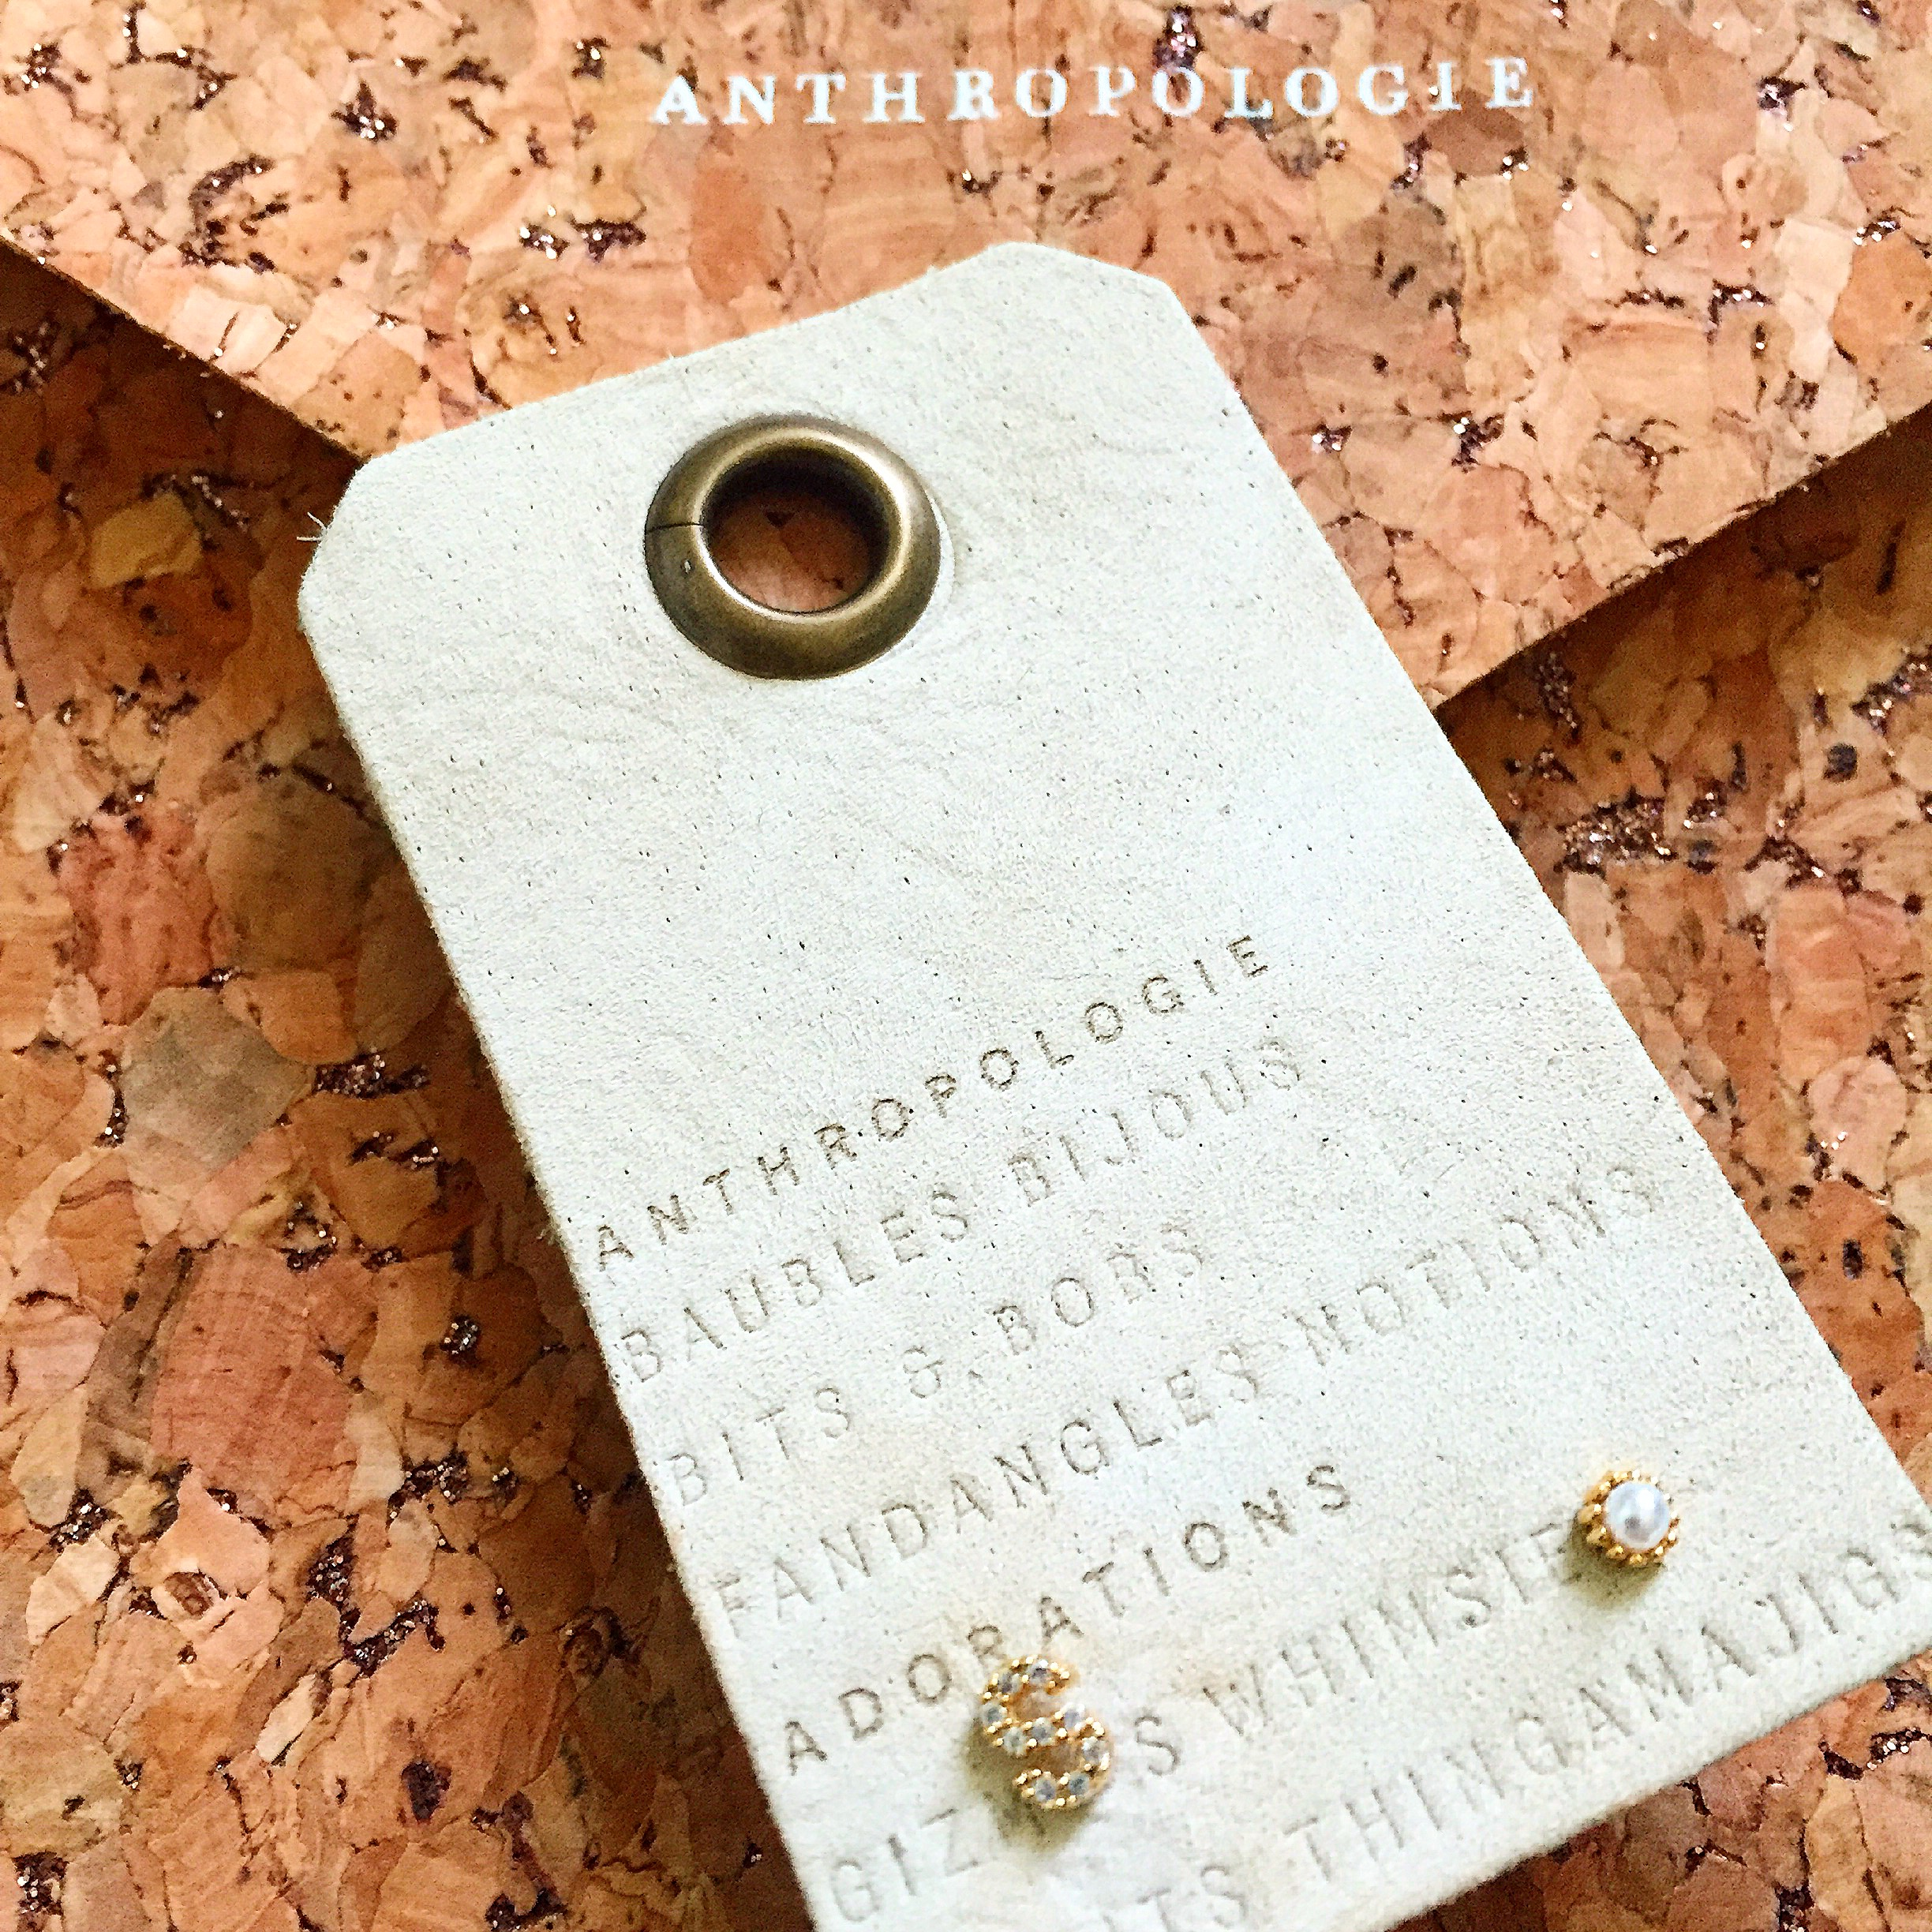 Anthropologie Initial Earrings